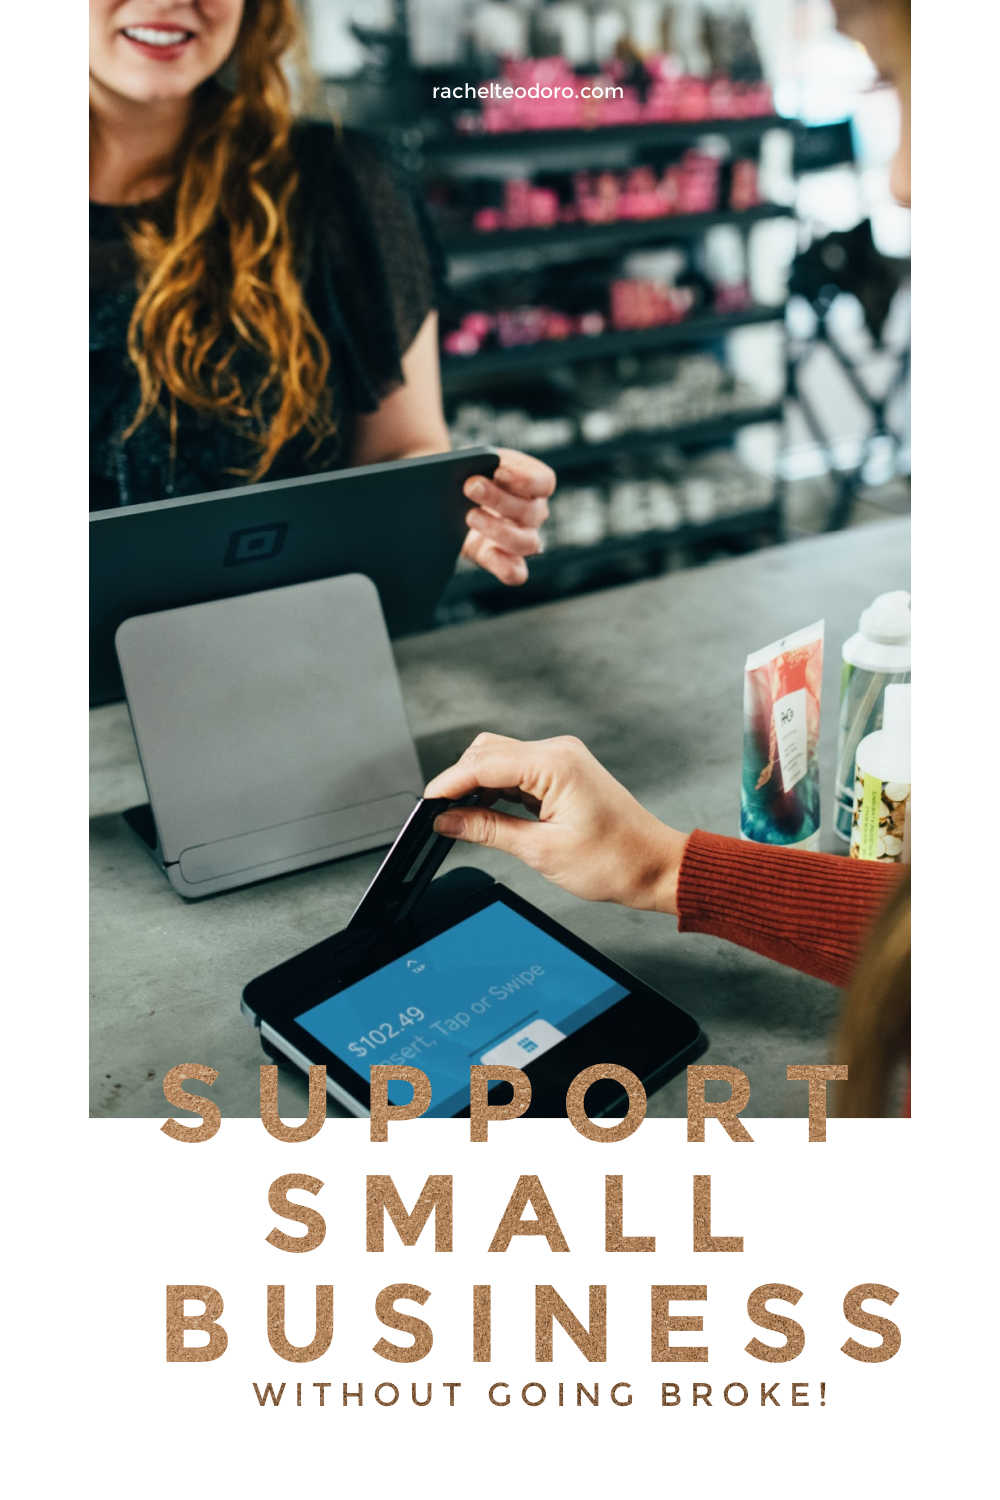 tips for supporting small businesses without going broke